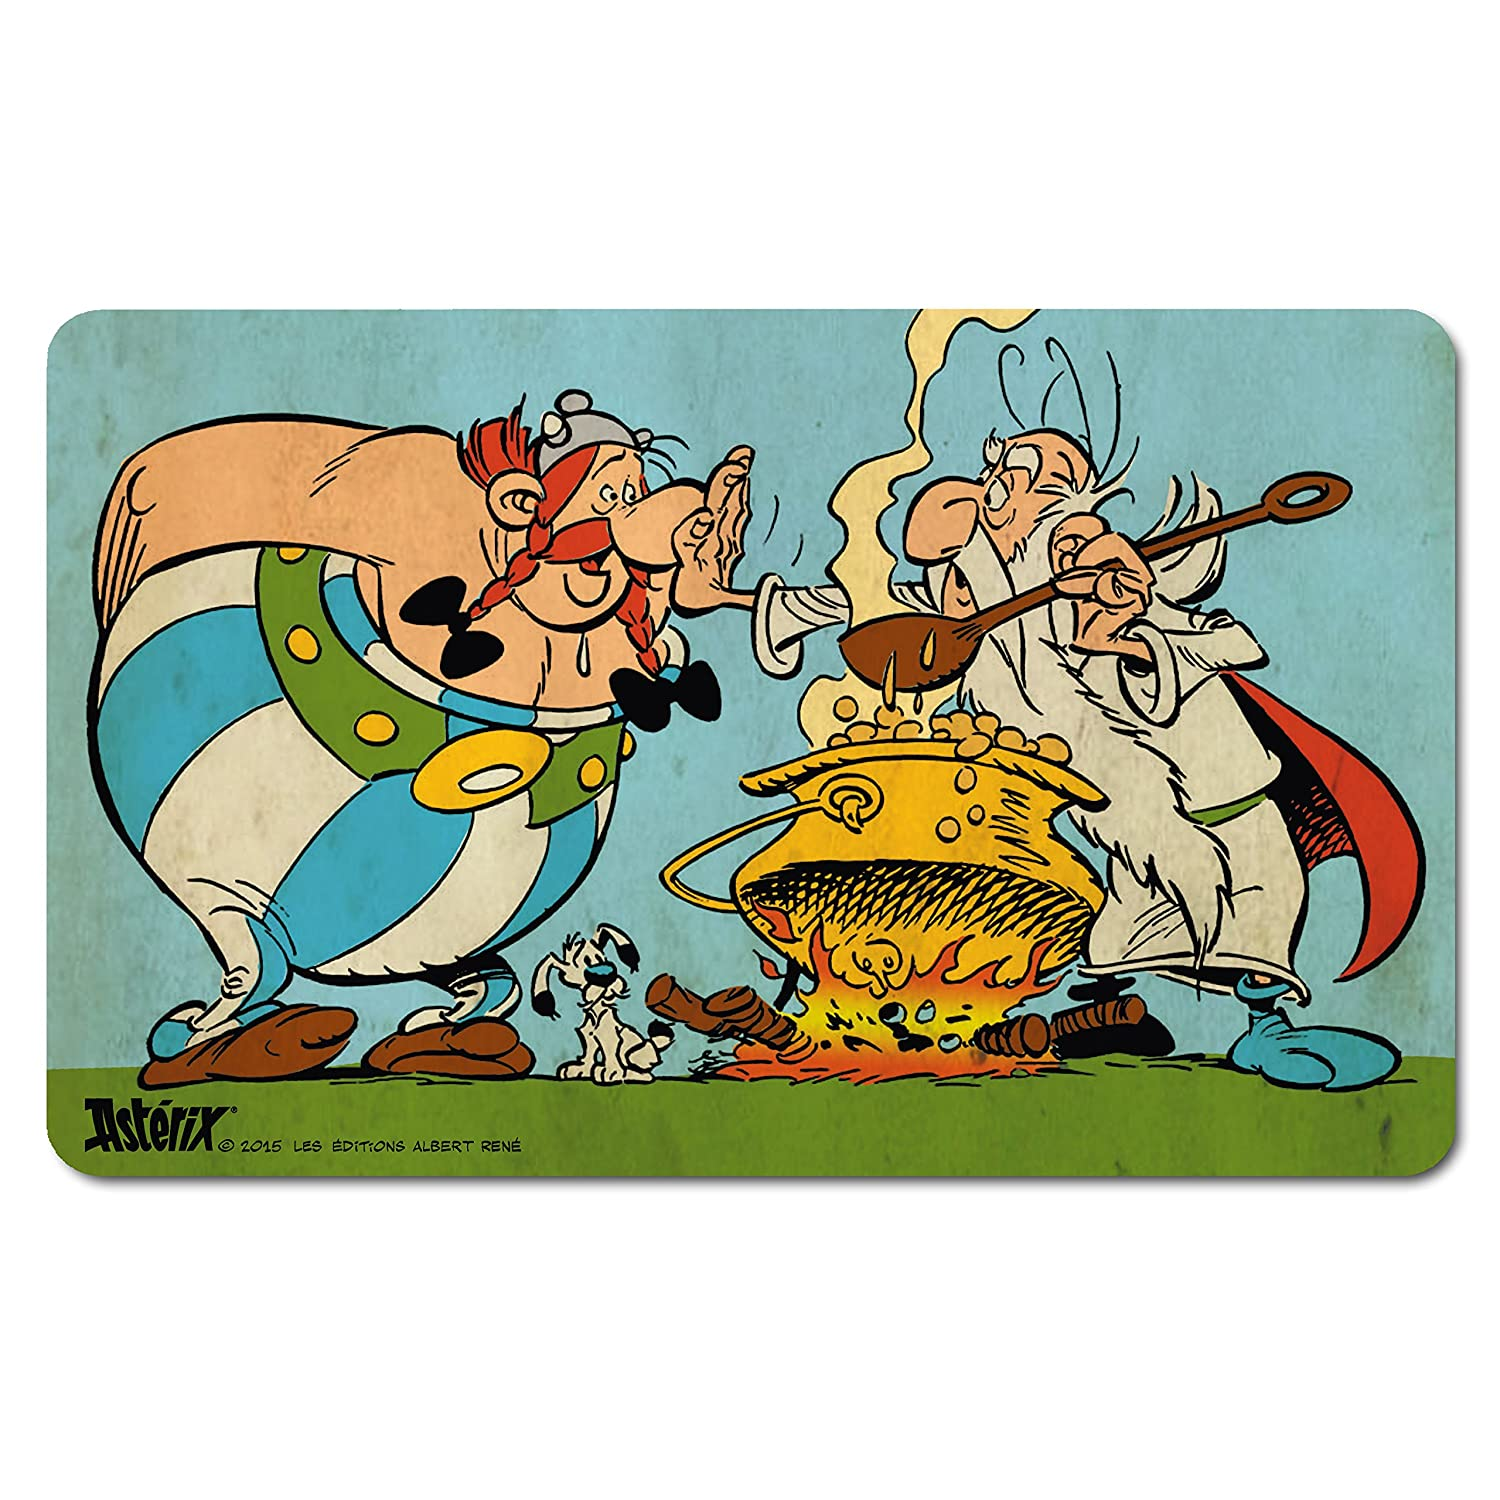 Getafix - No Magic Potion For Obelix - The Adventures Of Asterix - Comics - Breakfast Chopping Board - original licensed product - LOGOSHIRT